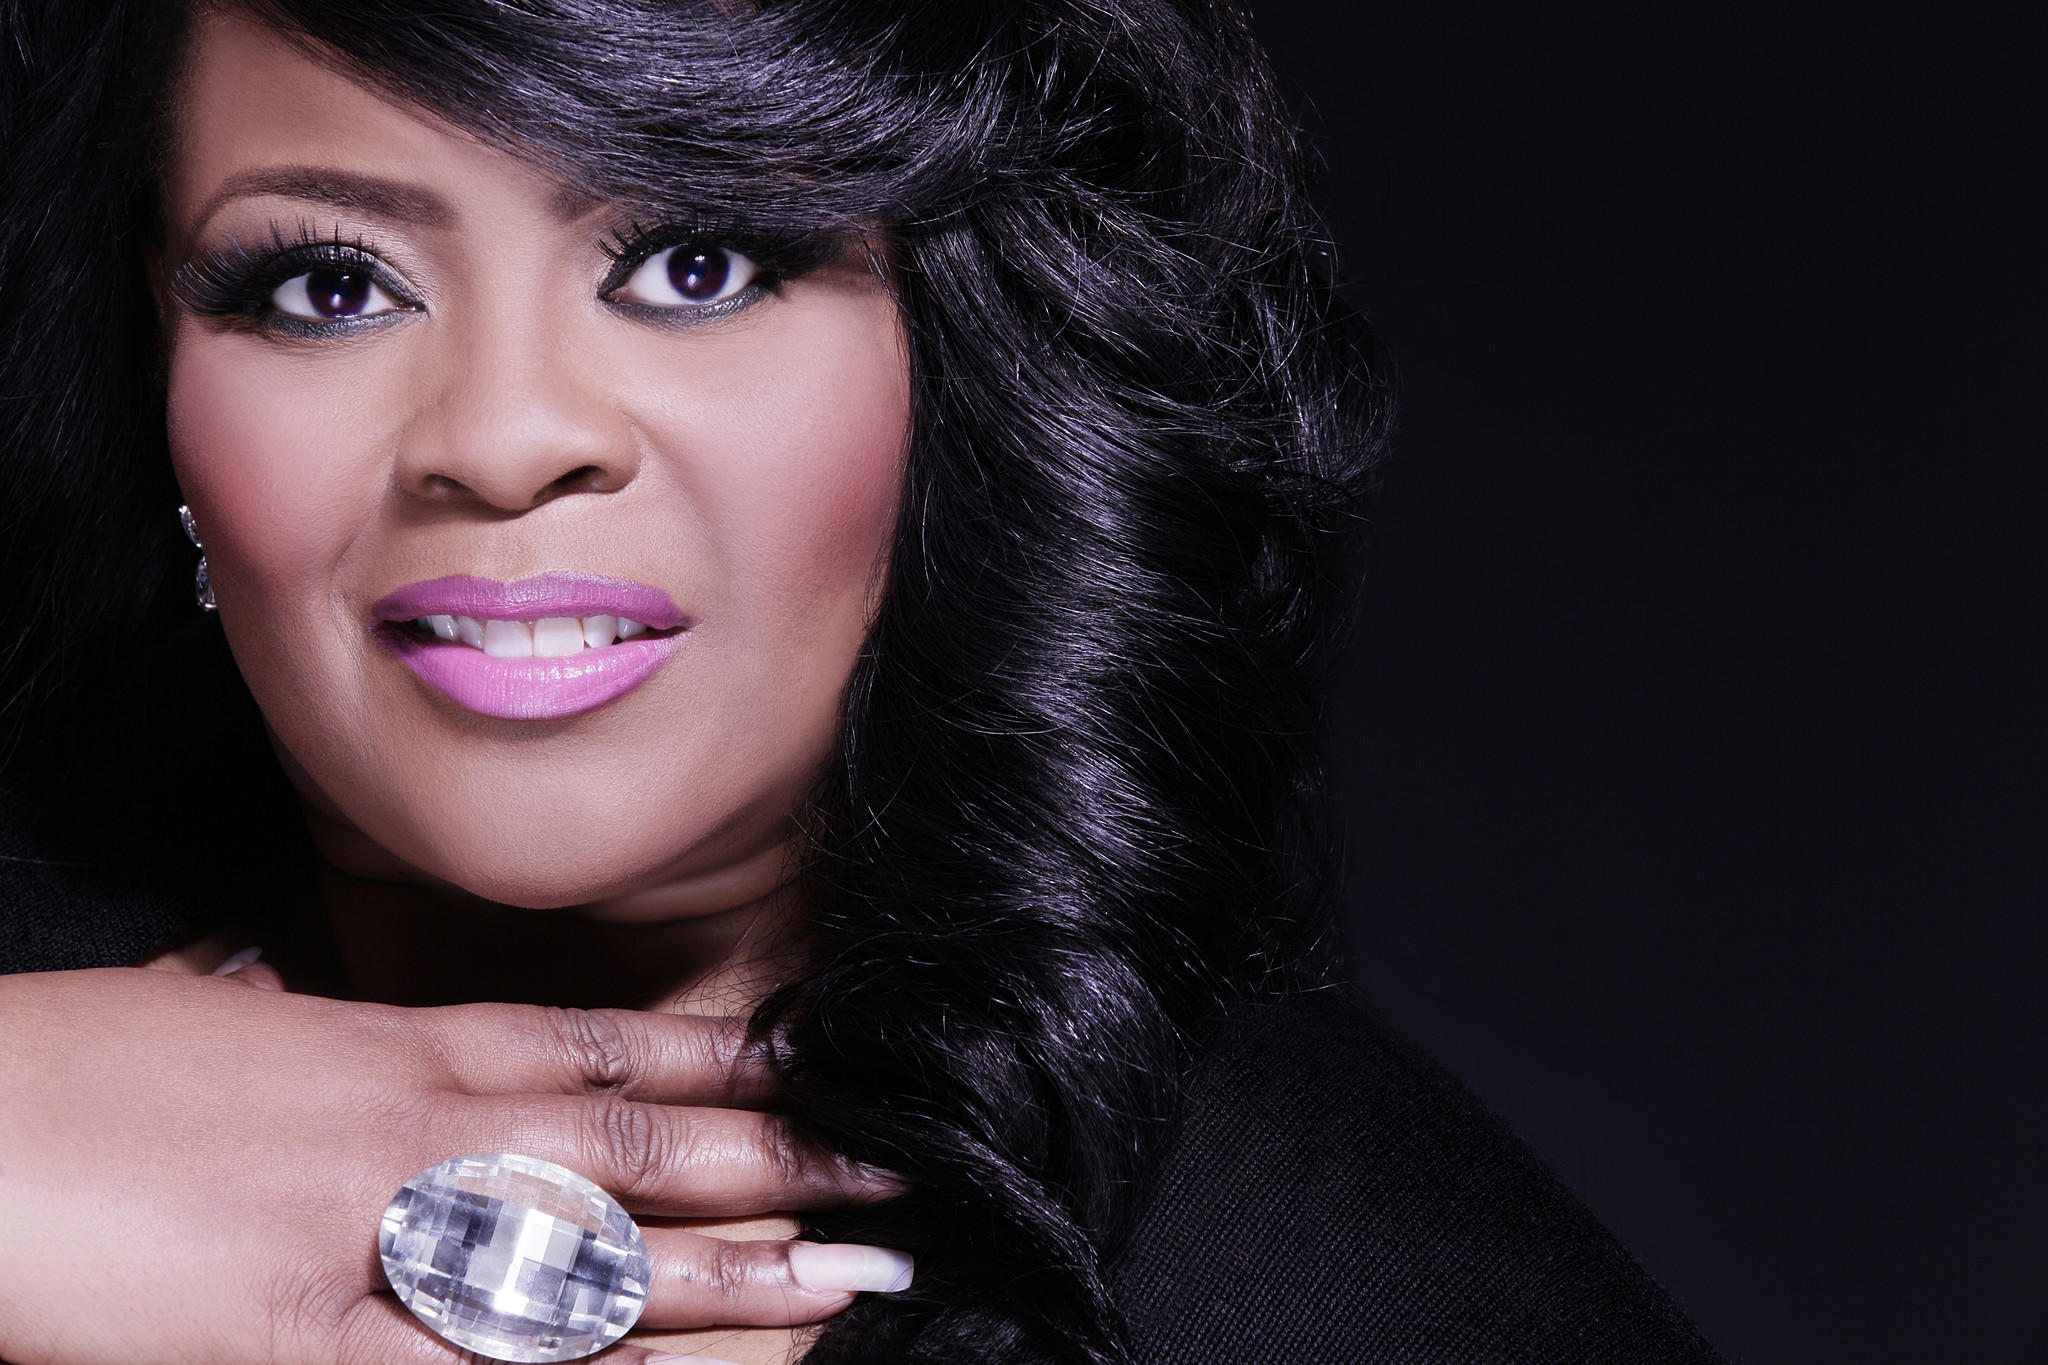 Baltimore musician Maysa Leak, who drops her last name when she records, received her first Grammy nomination in December.